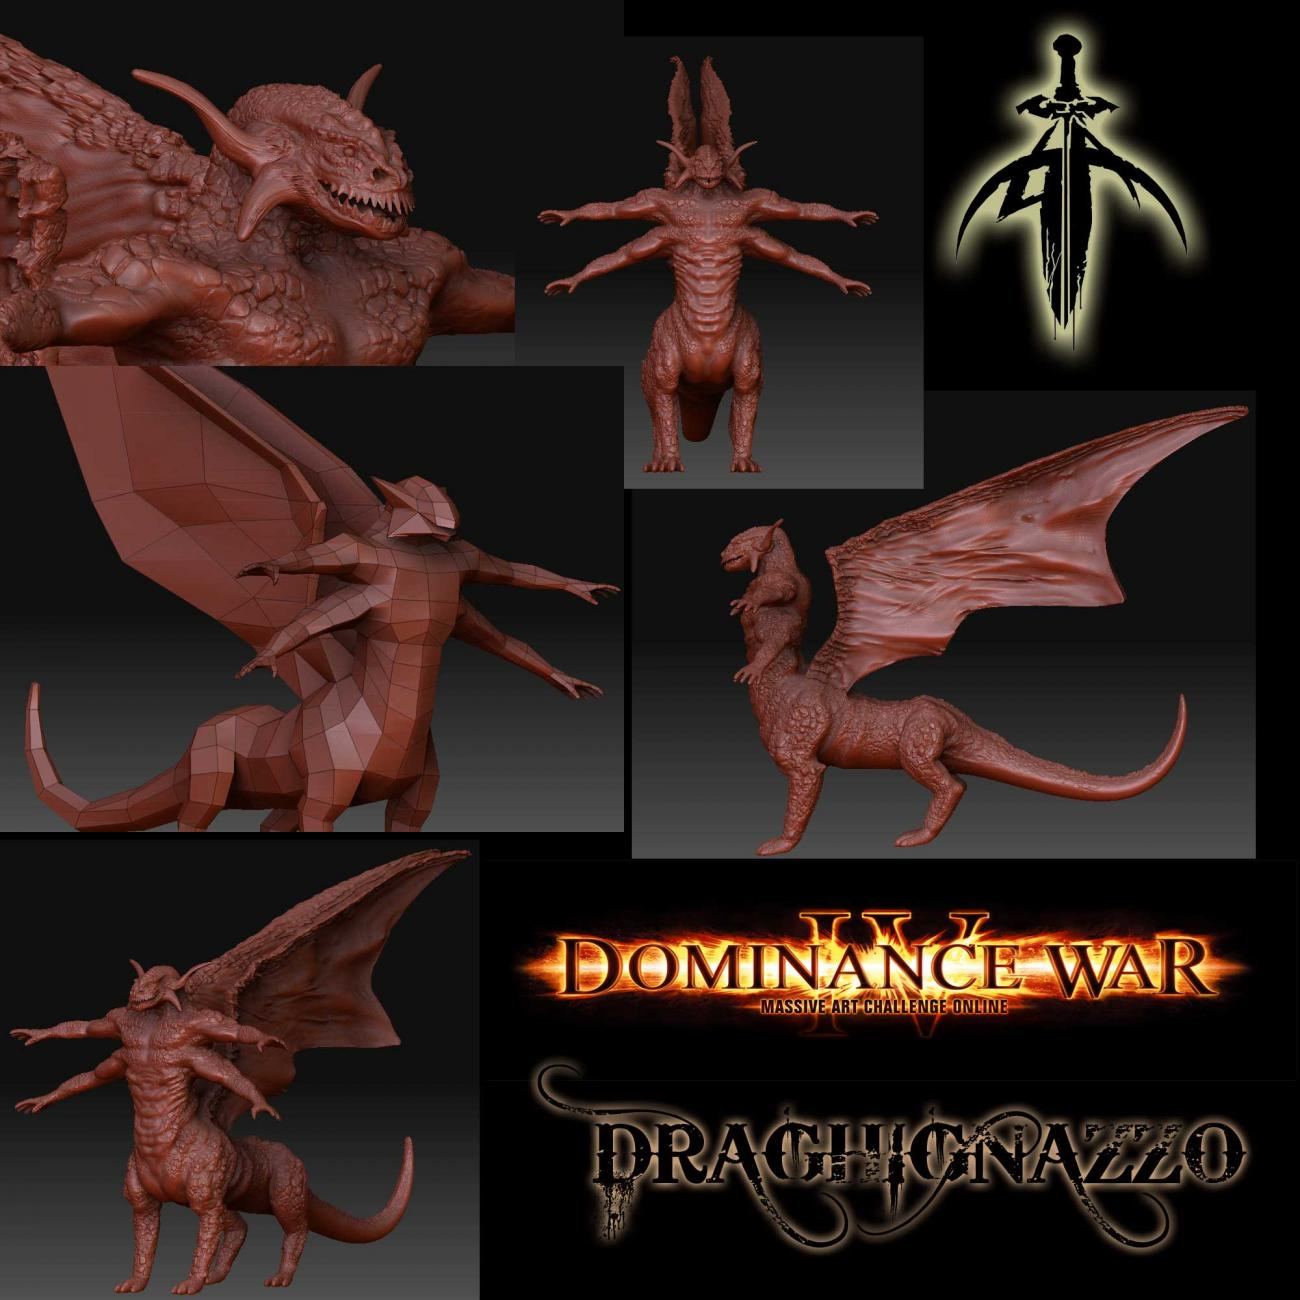 Draghignazzo Update by Mestophales